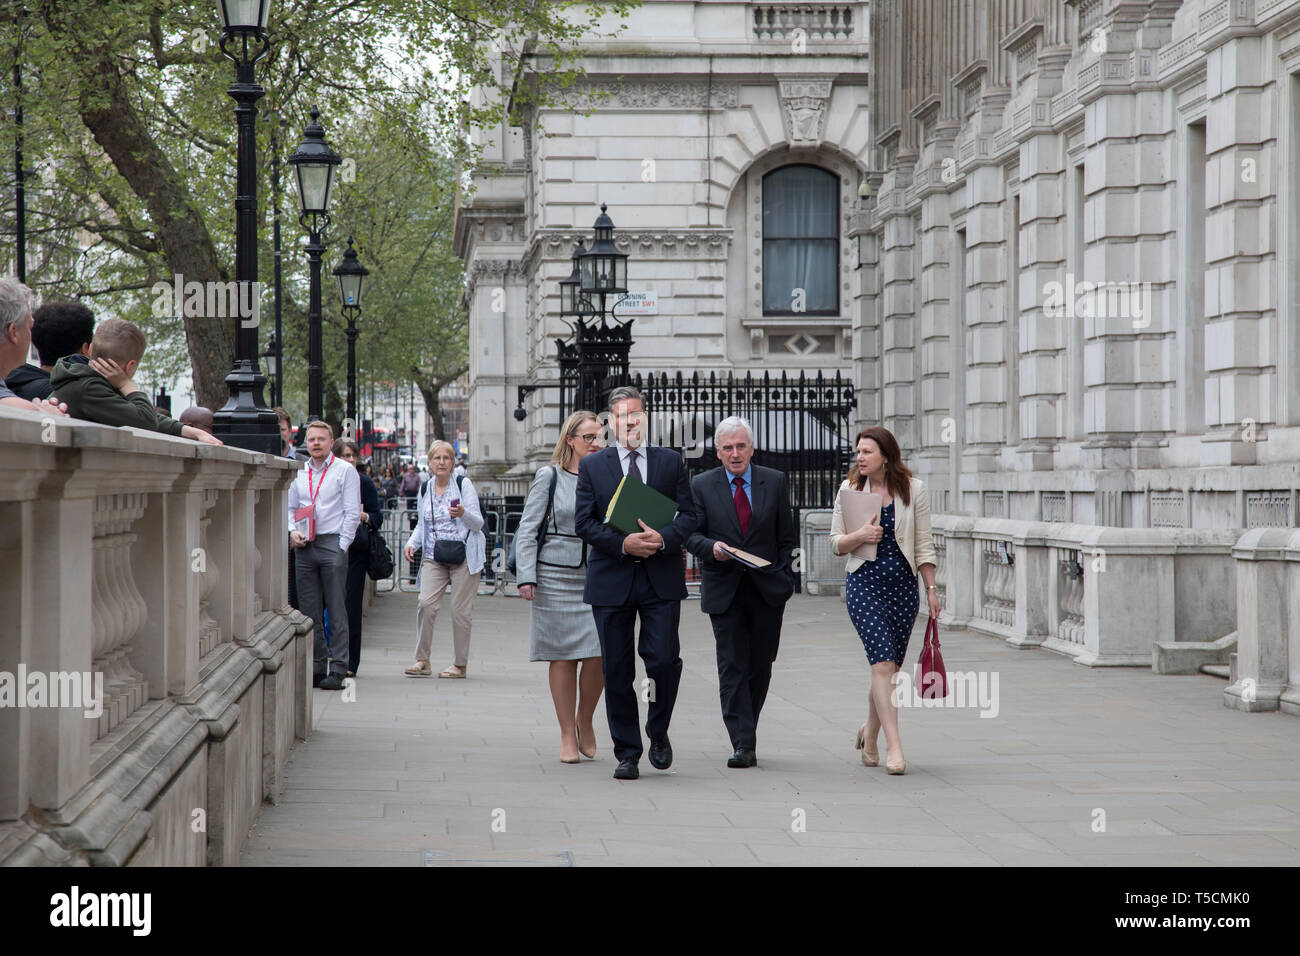 Cabinet Office, London, UK. 23 April 2019. (L-R) Rebecca Long-Bailey, Keir Starmer, John McDonald and a Labour aide resume Brexit talks  with the government at Cabinet Office, Westminster. Credit: Santo Basone/Alamy Live News - Stock Image